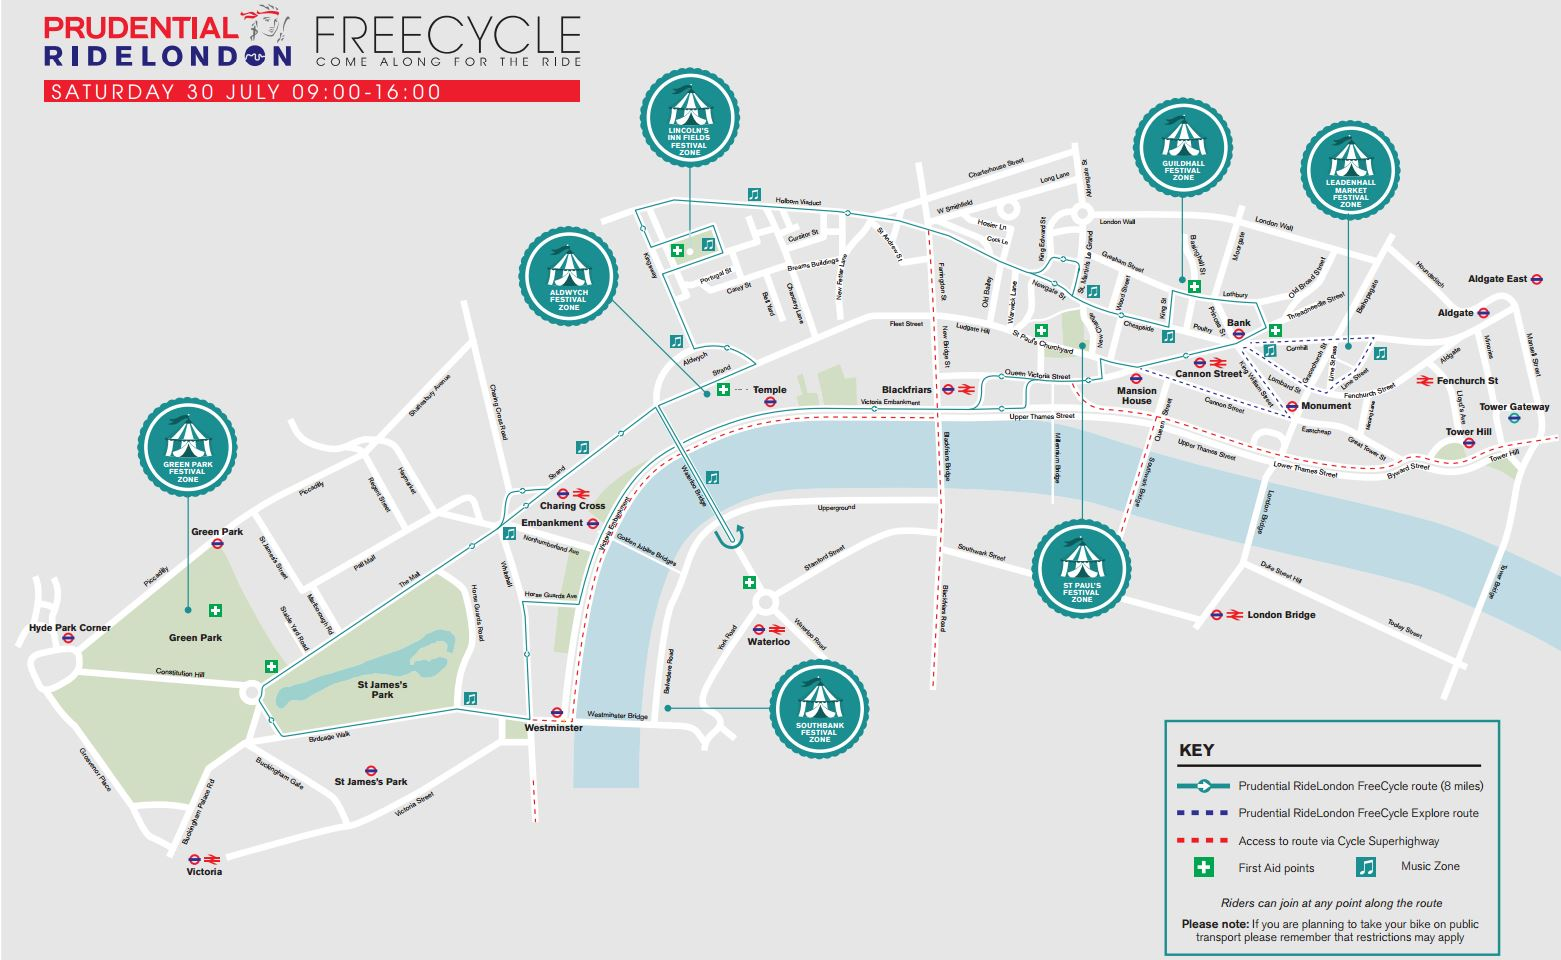 Prudential RideLondon 2016 FreeCycle route map